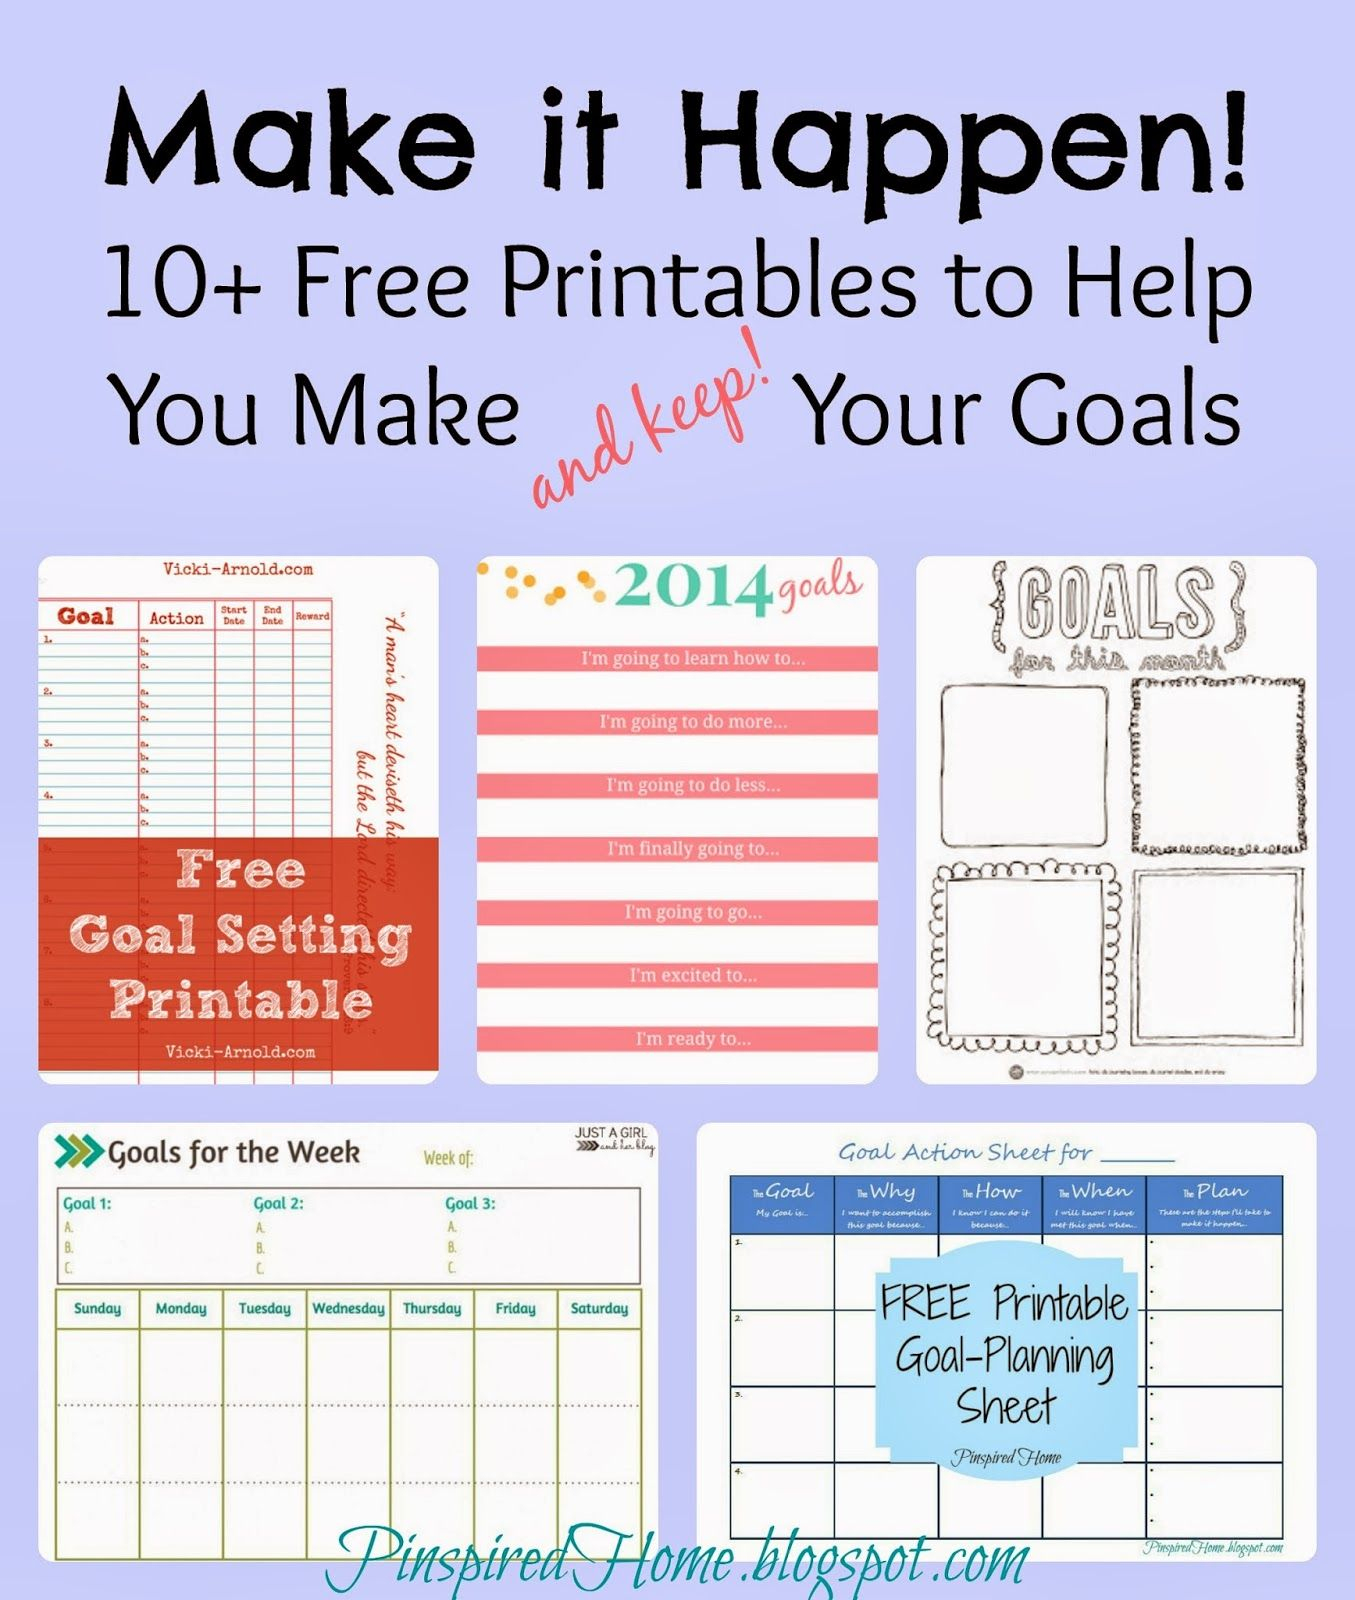 Make It Happen: 10 Free Printables To Help You Meet Your Goals - Free Printable Home Organizer Notebook